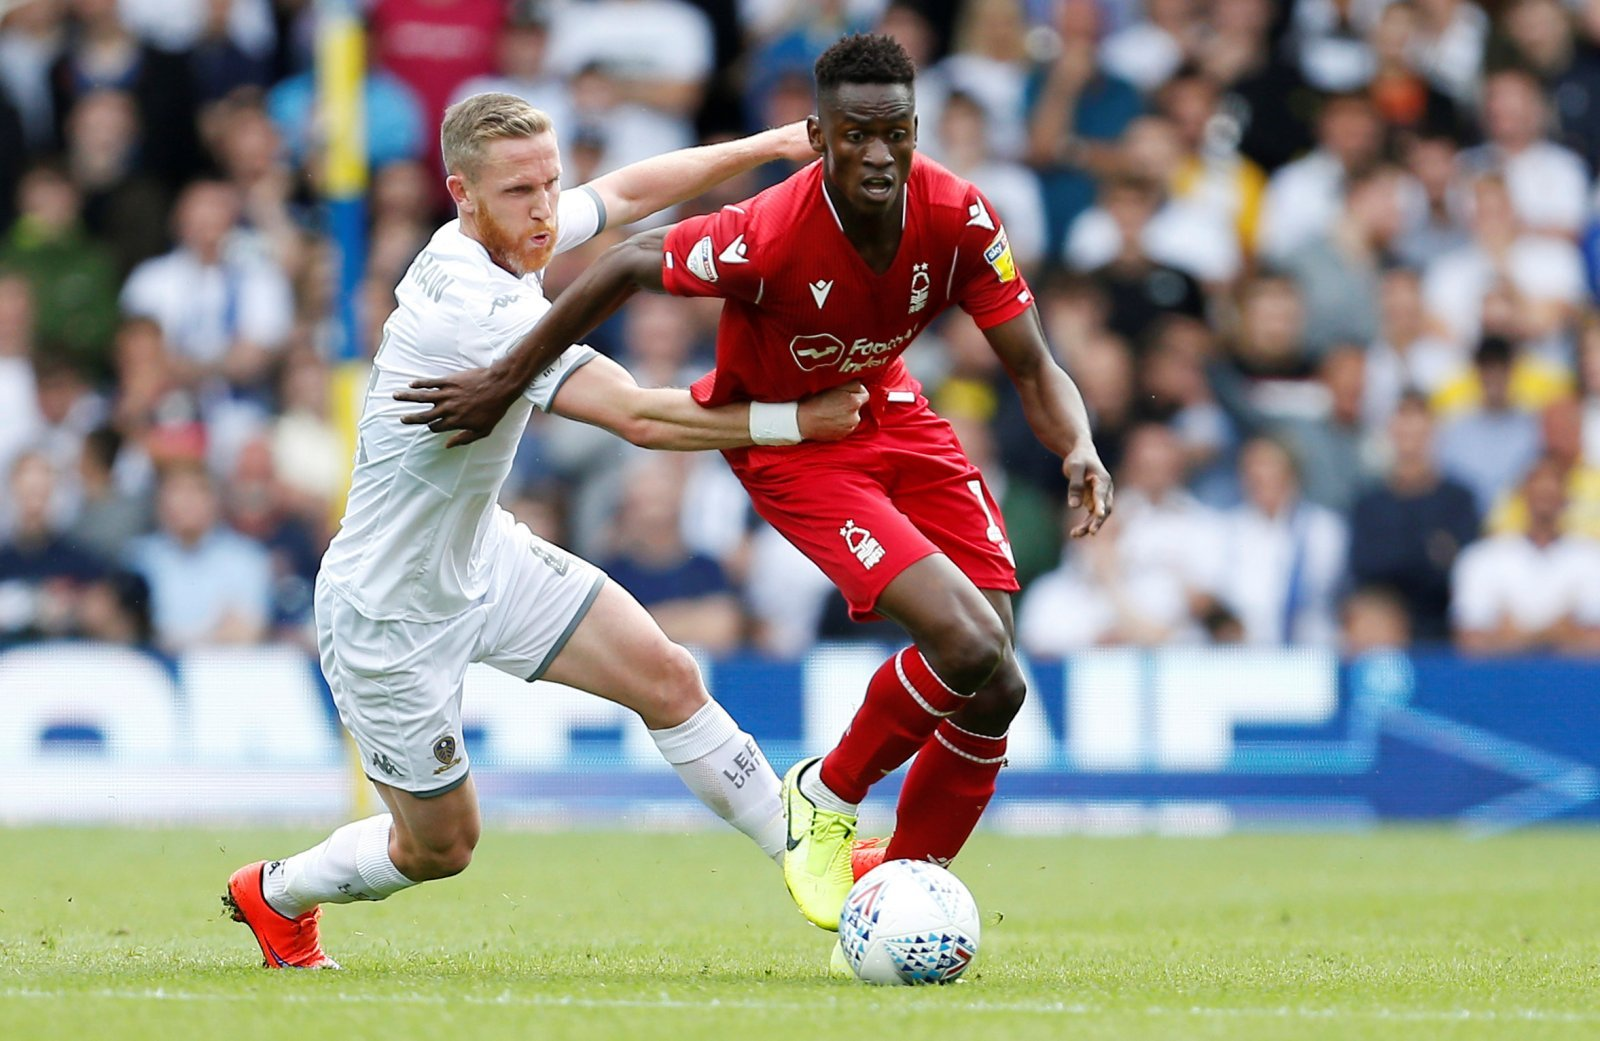 Leeds United: Adam Forshaw continues to play out of his skin